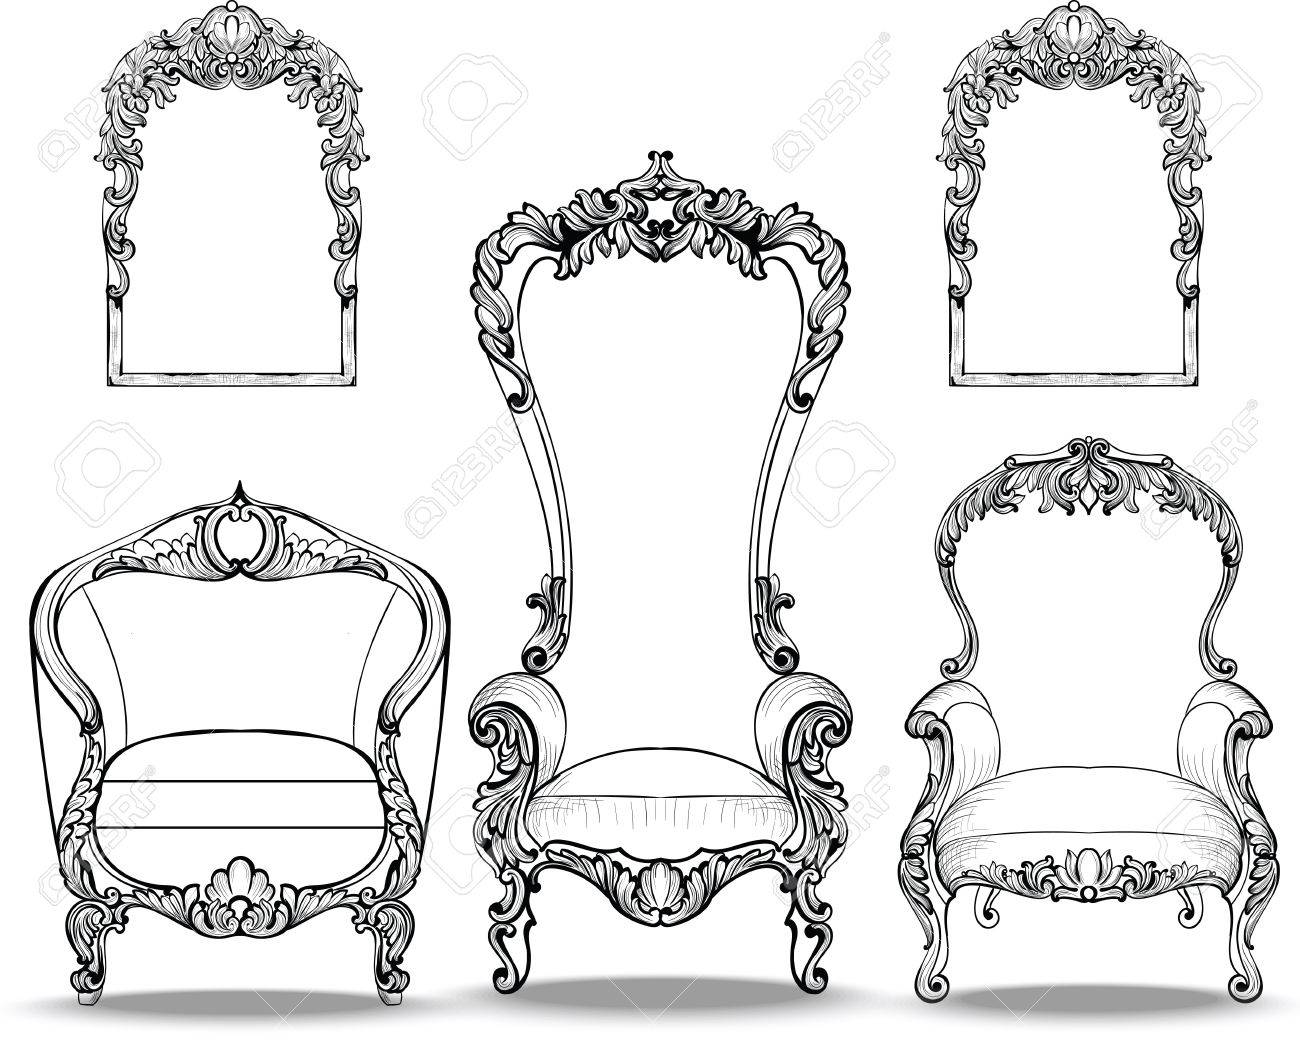 Fauteuils Baroques Fauteuils Baroques Impériaux Serties D Ornements Luxueux Vector French Luxury Structure Complexe Riche Décor De Style Victorien Royal